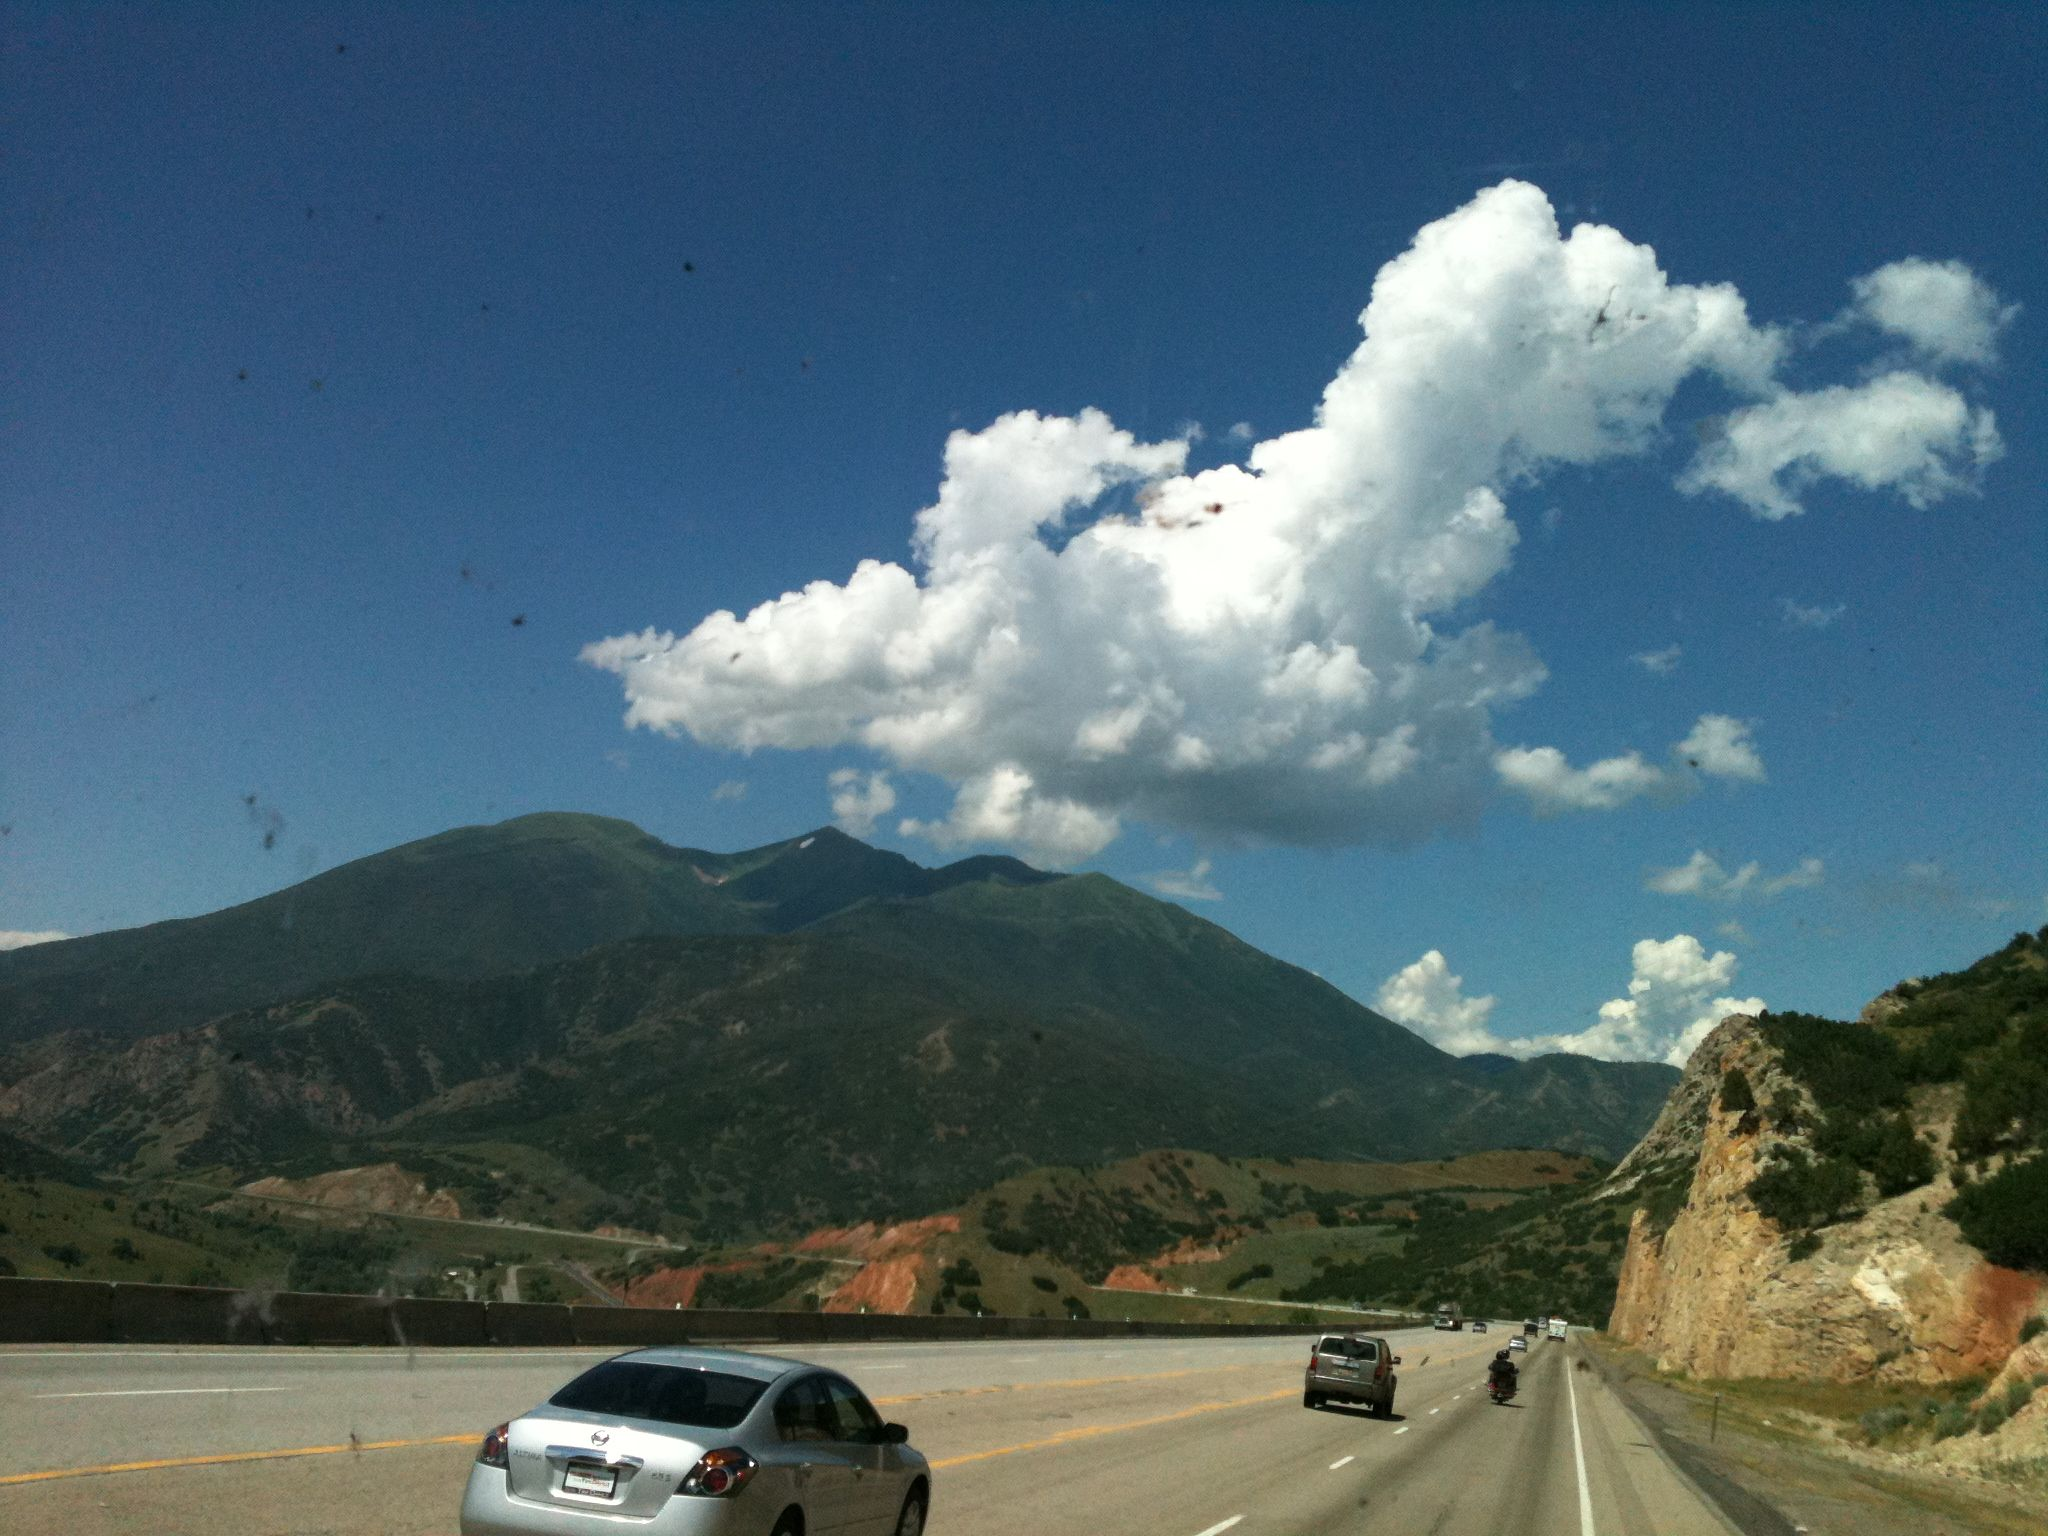 The clouds look so big out west